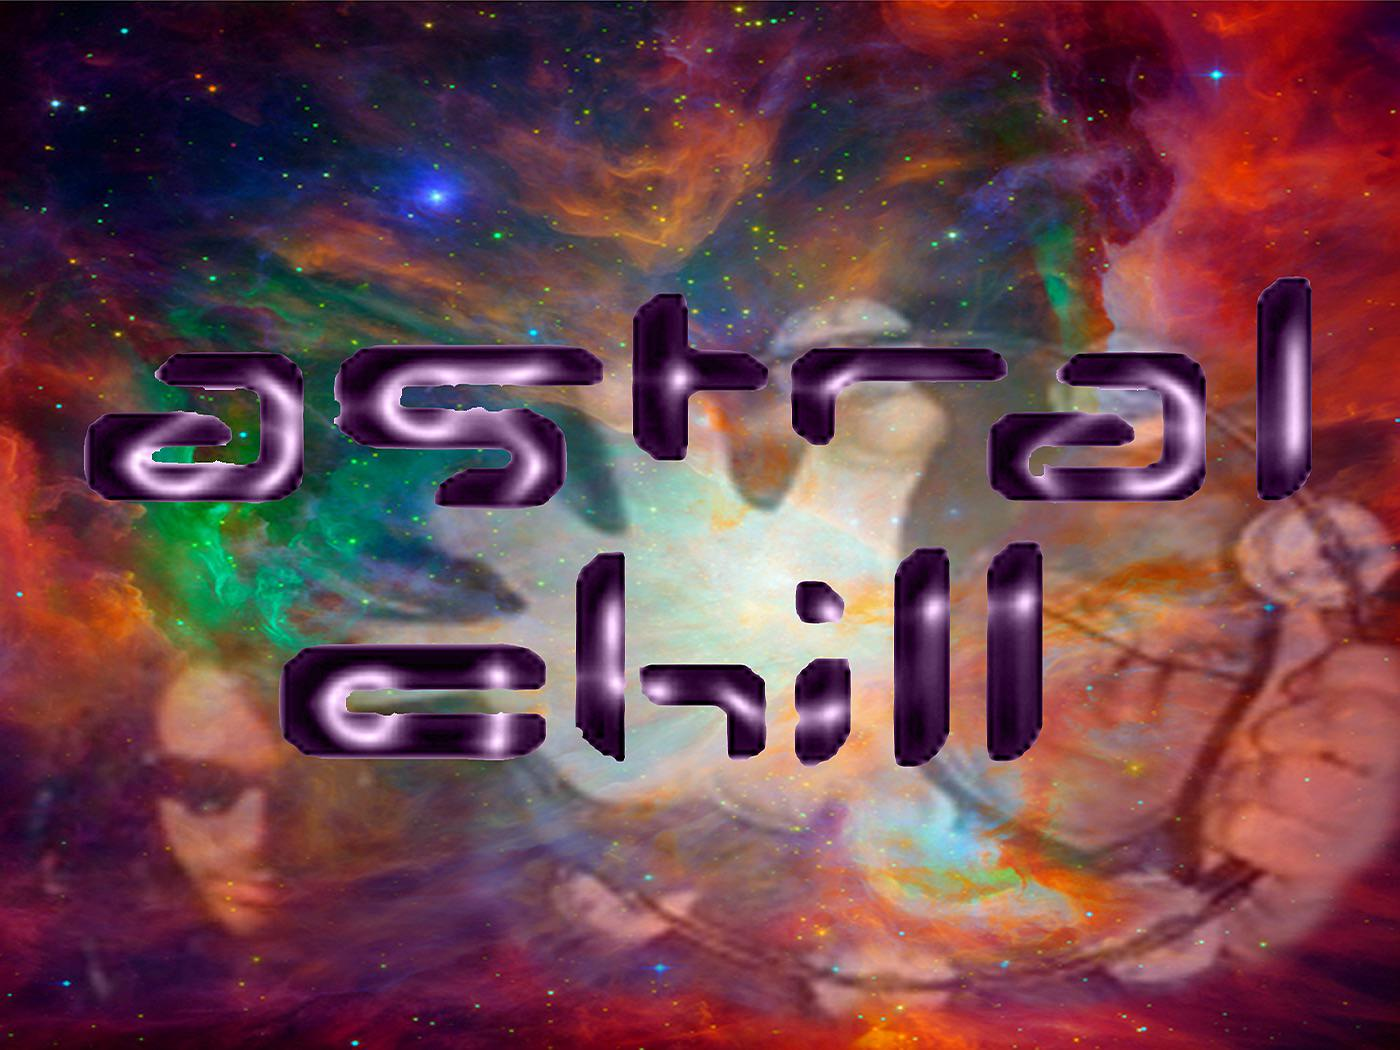 Astral Chill